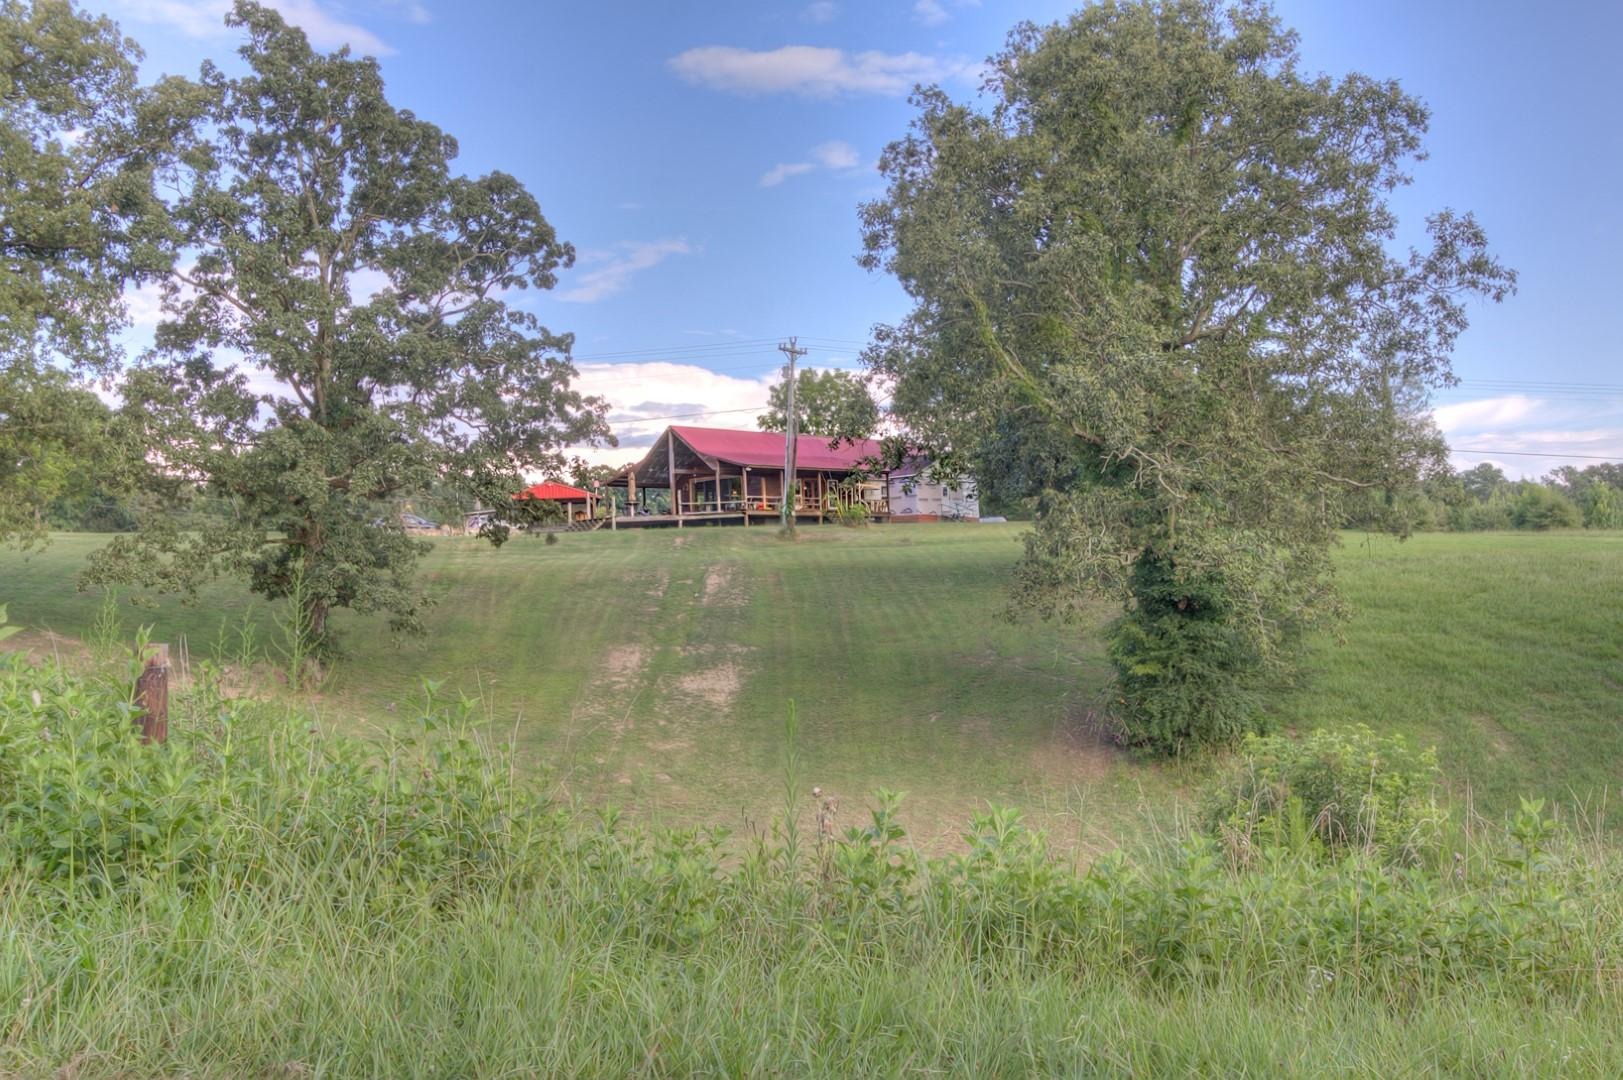 1825 Long Island Rd, South Pittsburg, TN 37380